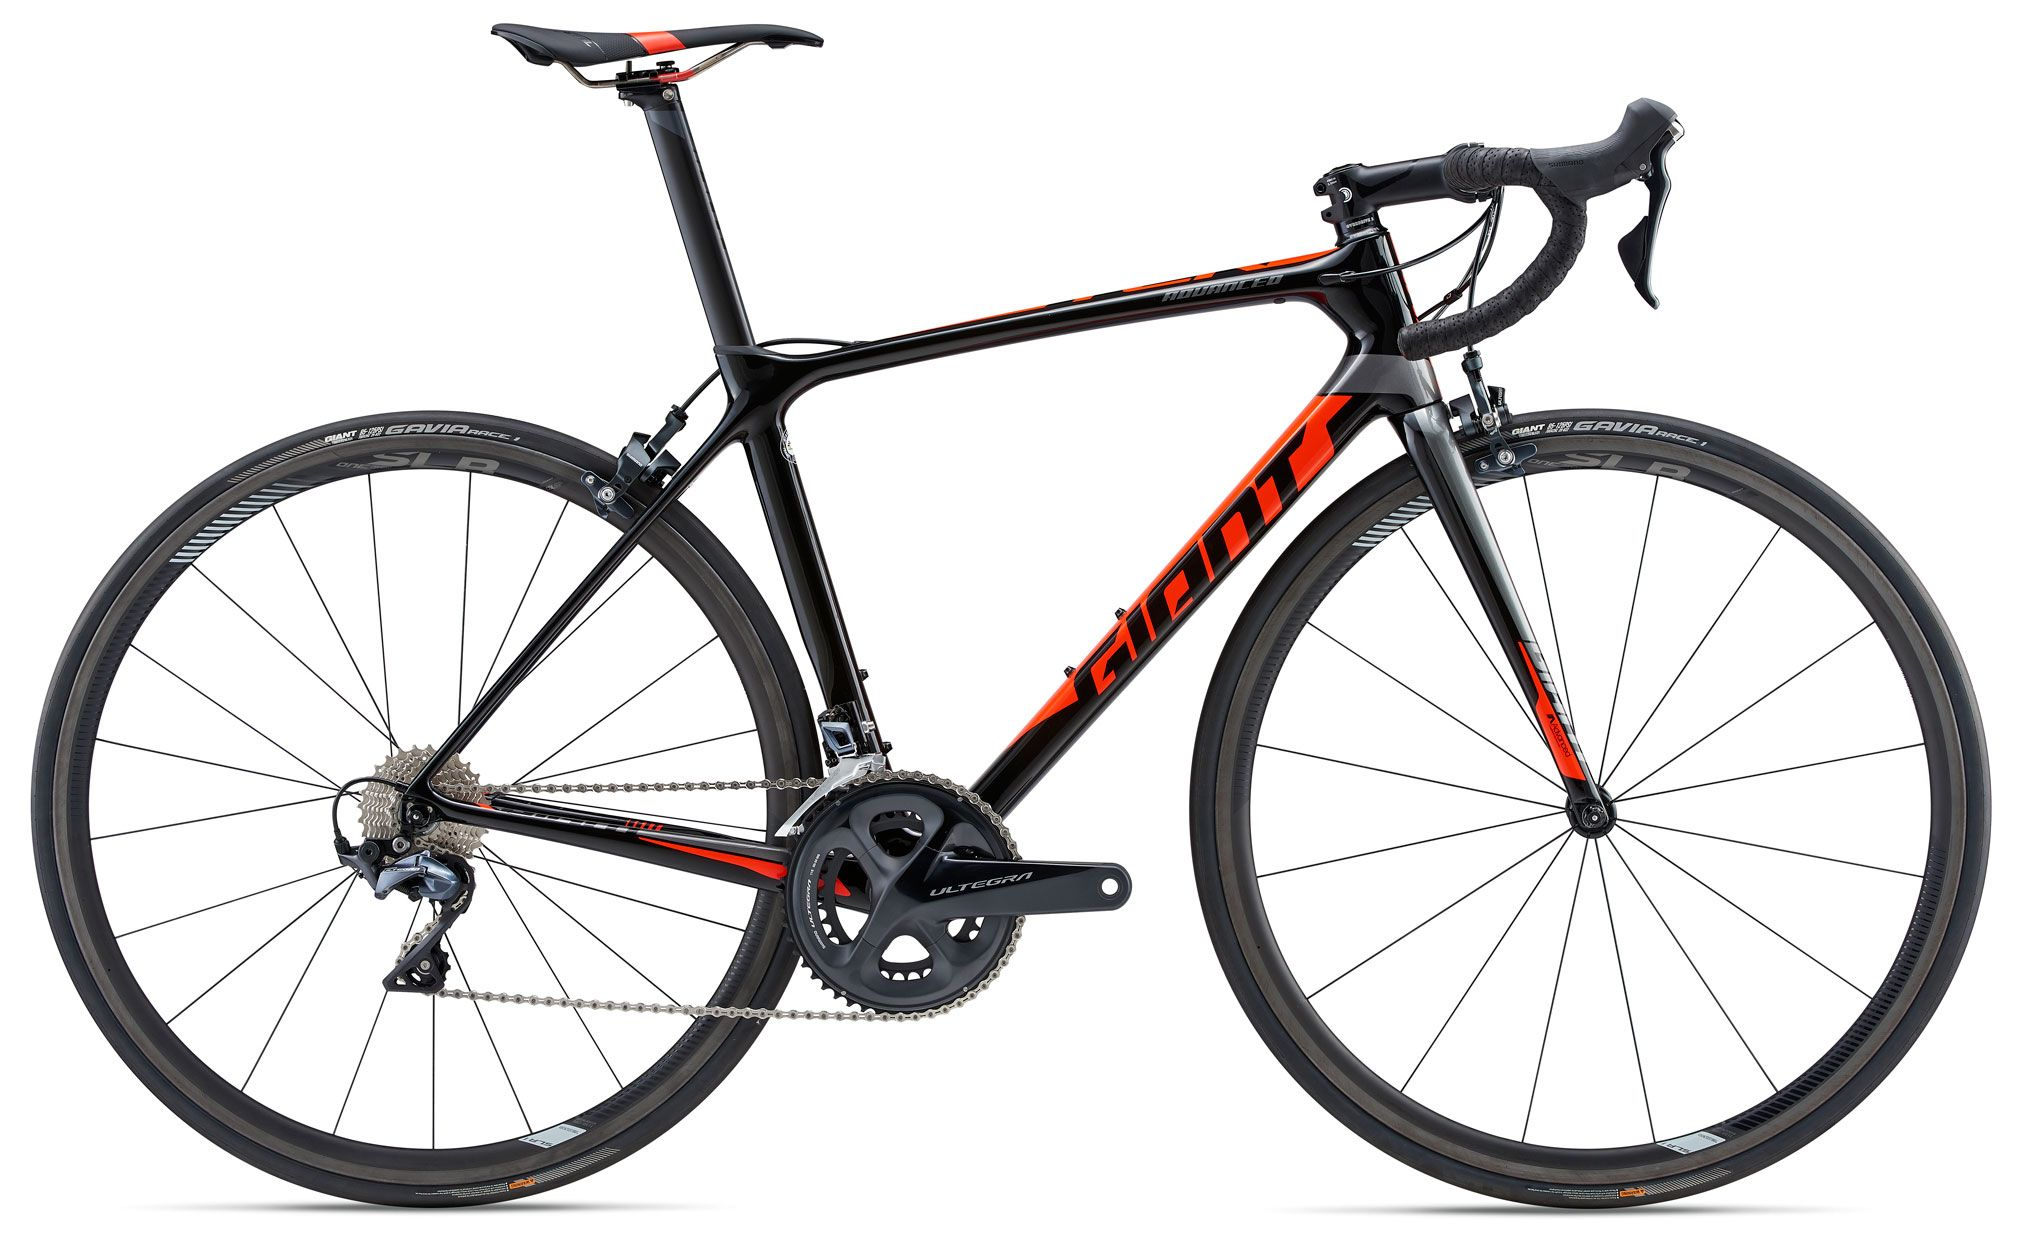 Велосипед Giant TCR Advanced Pro 1 2018 велосипед giant trinity advanced pro 1 2016 page 8